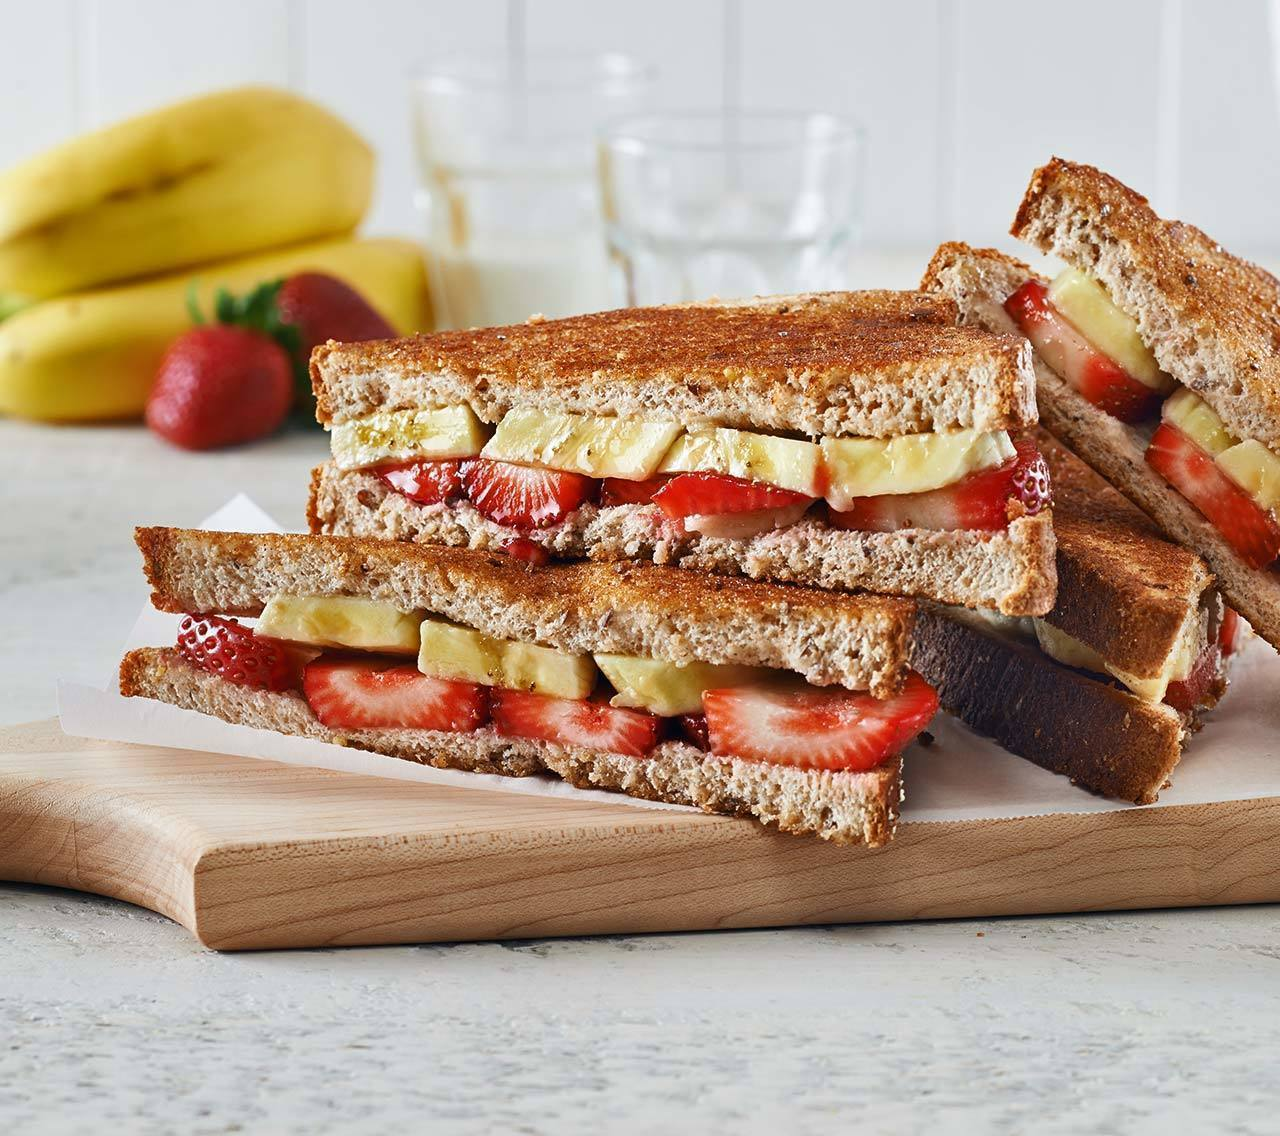 Breakfast Paninis with Banana & Berries